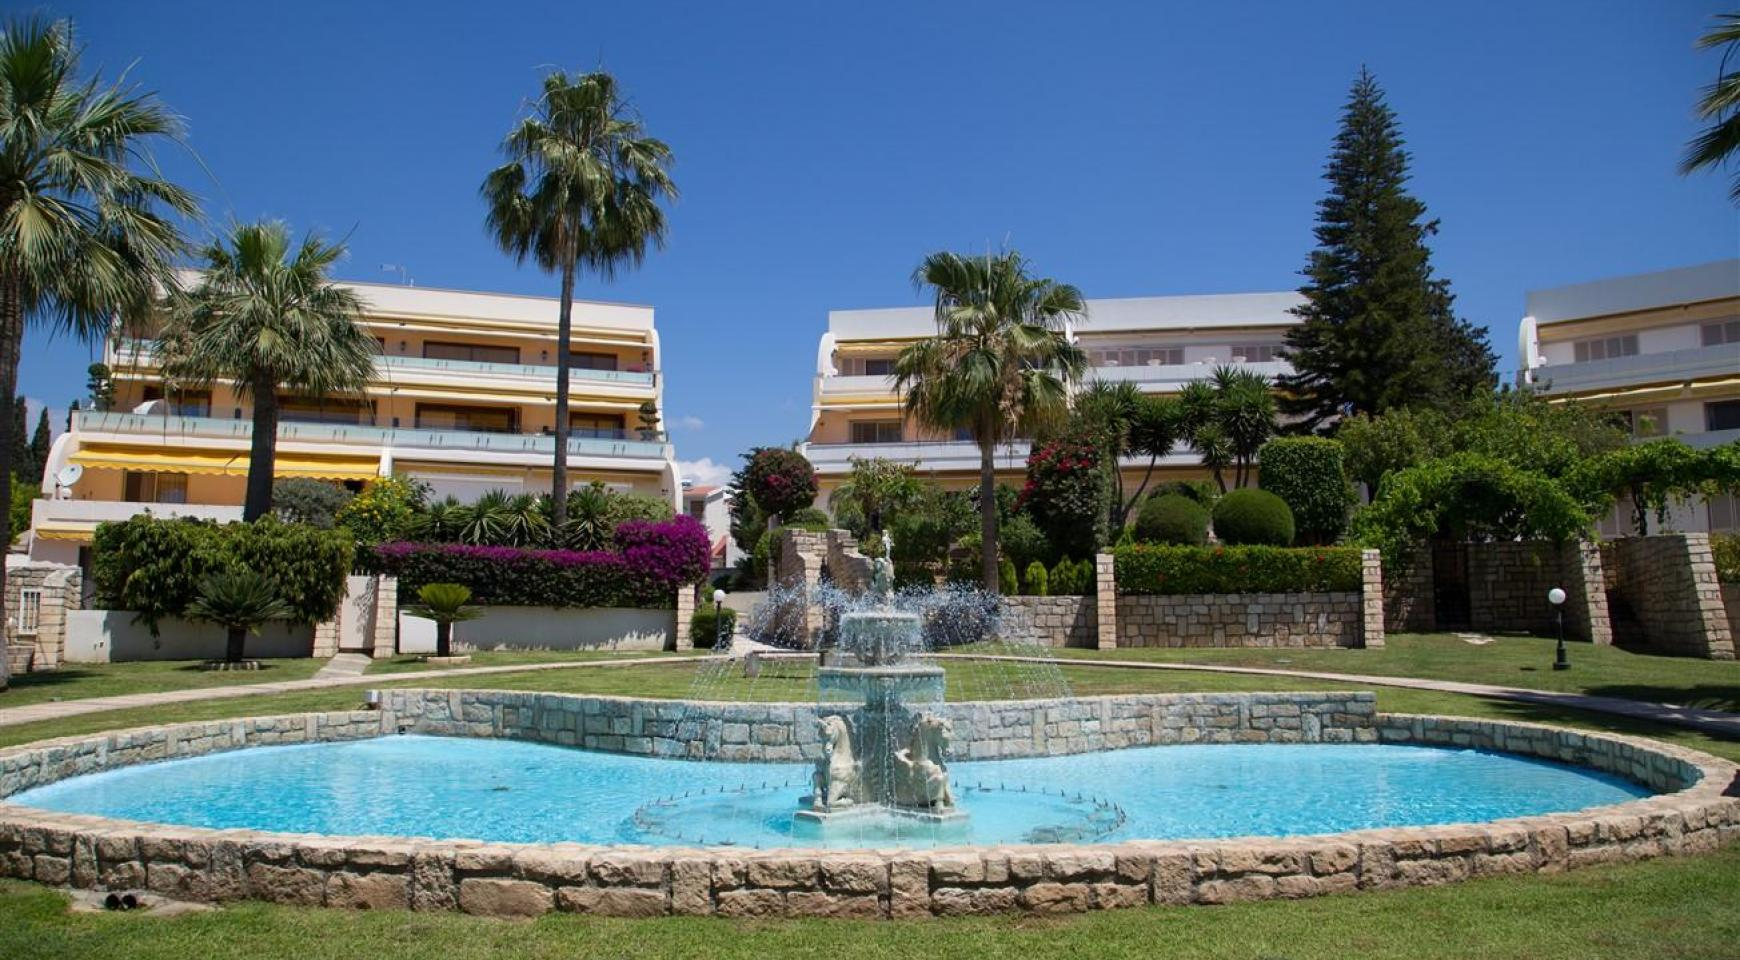 3 Bedroom Apartment in Thera Complex by the Sea - 4